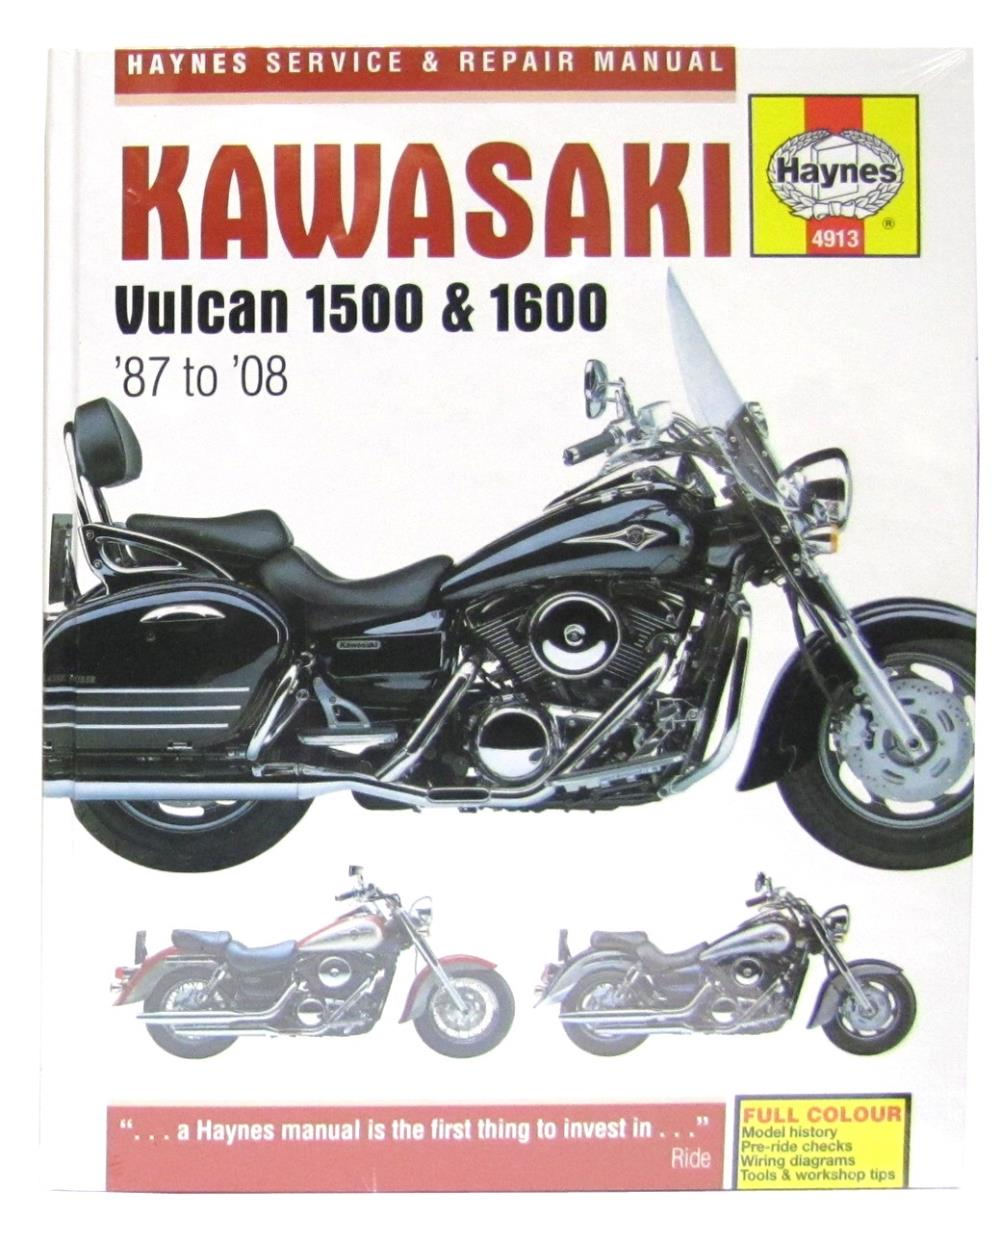 haynes manual 4913 kawasaki vulcan 1500 1600 87 08 ebay rh ebay co uk kawasaki vulcan 1500 nomad service manual 1999 kawasaki vulcan 1500 owners manual